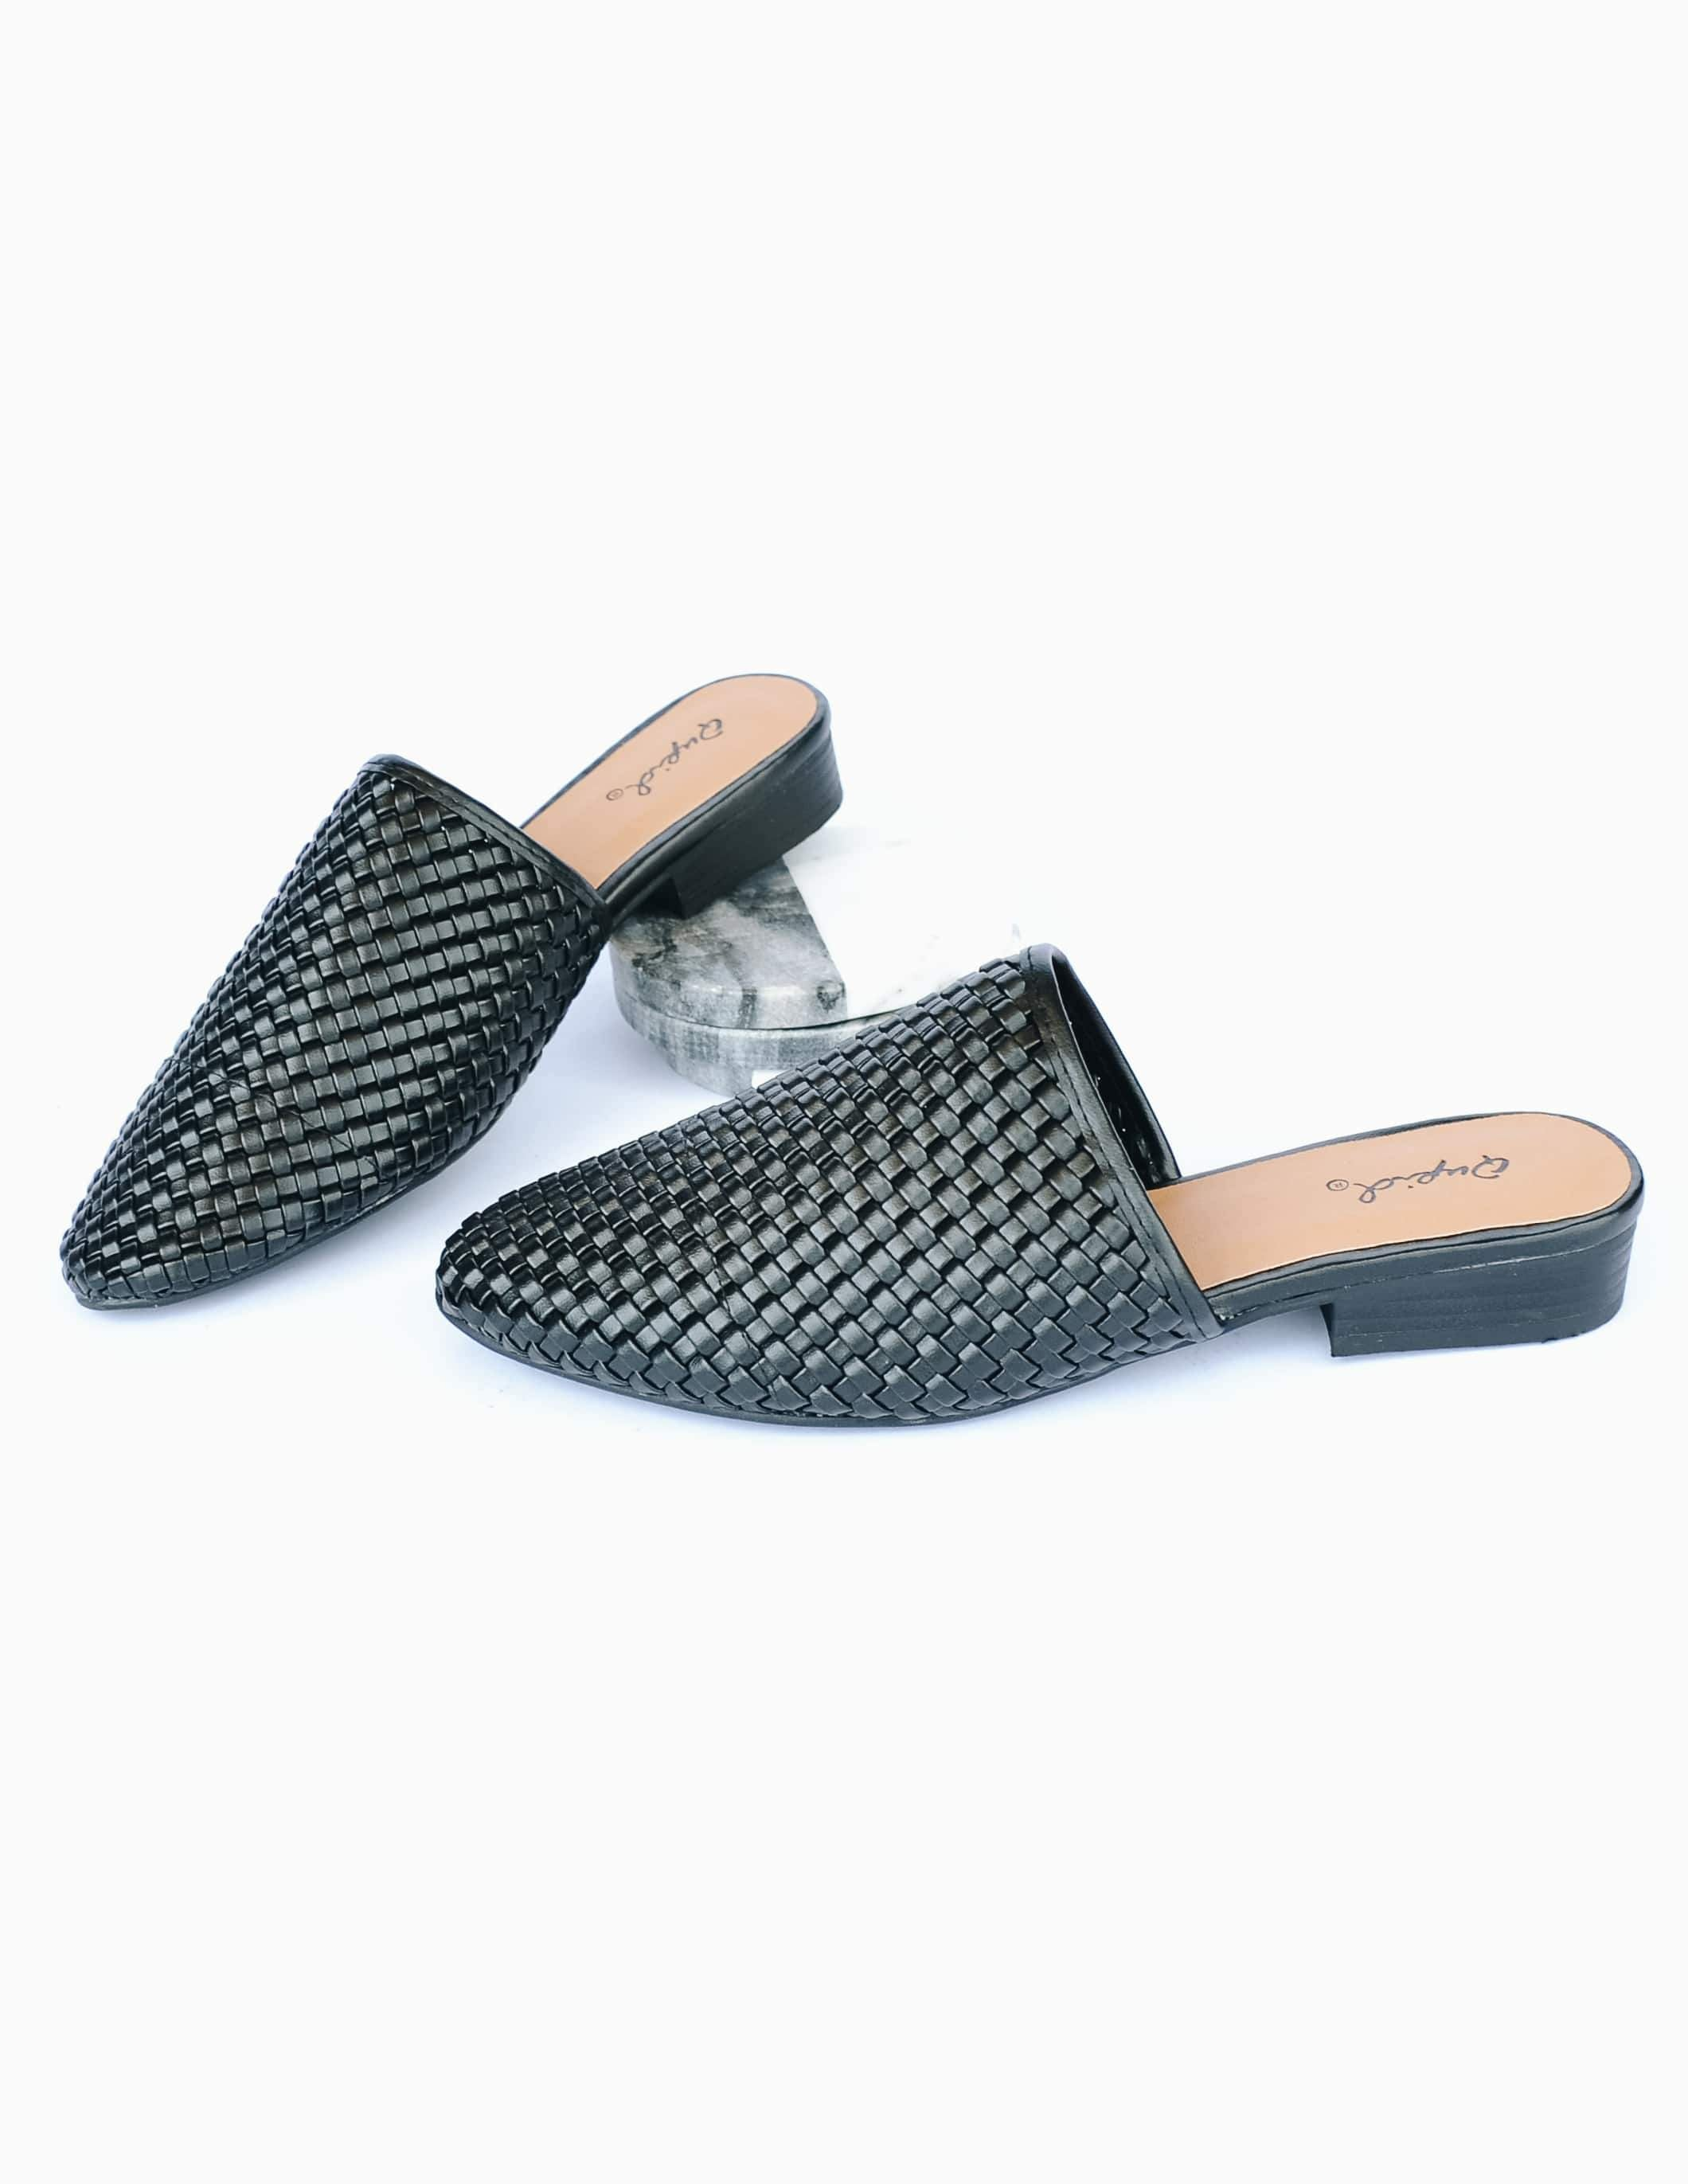 Black woven upper on black sole with tan padded insole on white background